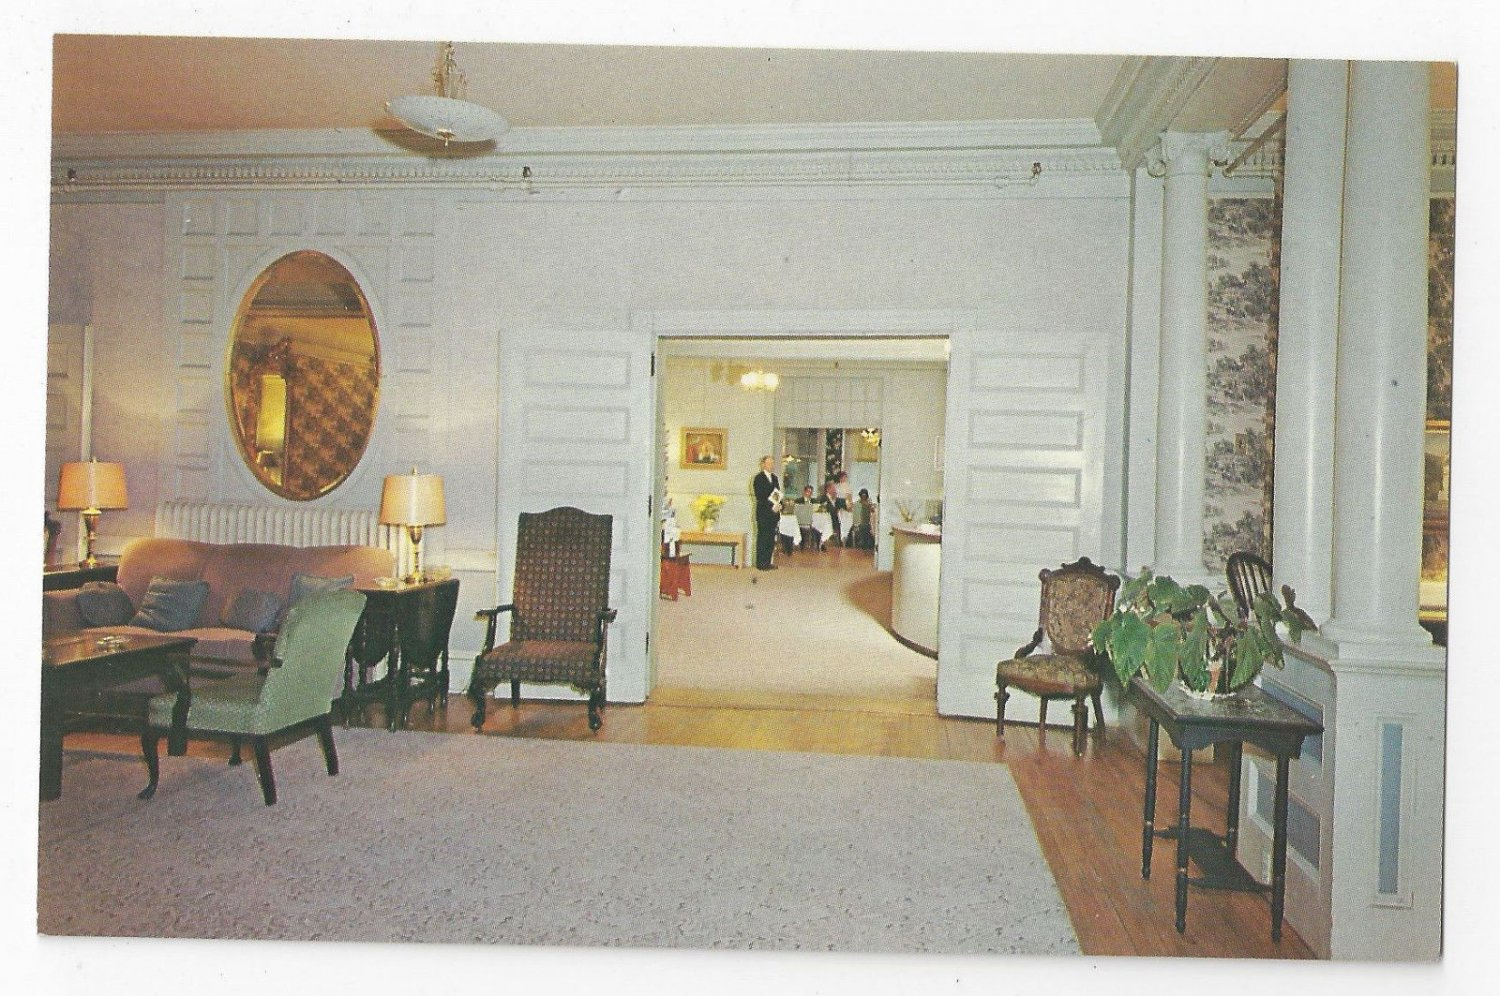 Brandon VT Inn Lobby and Lounge Interior Vermont Hotel Postcard